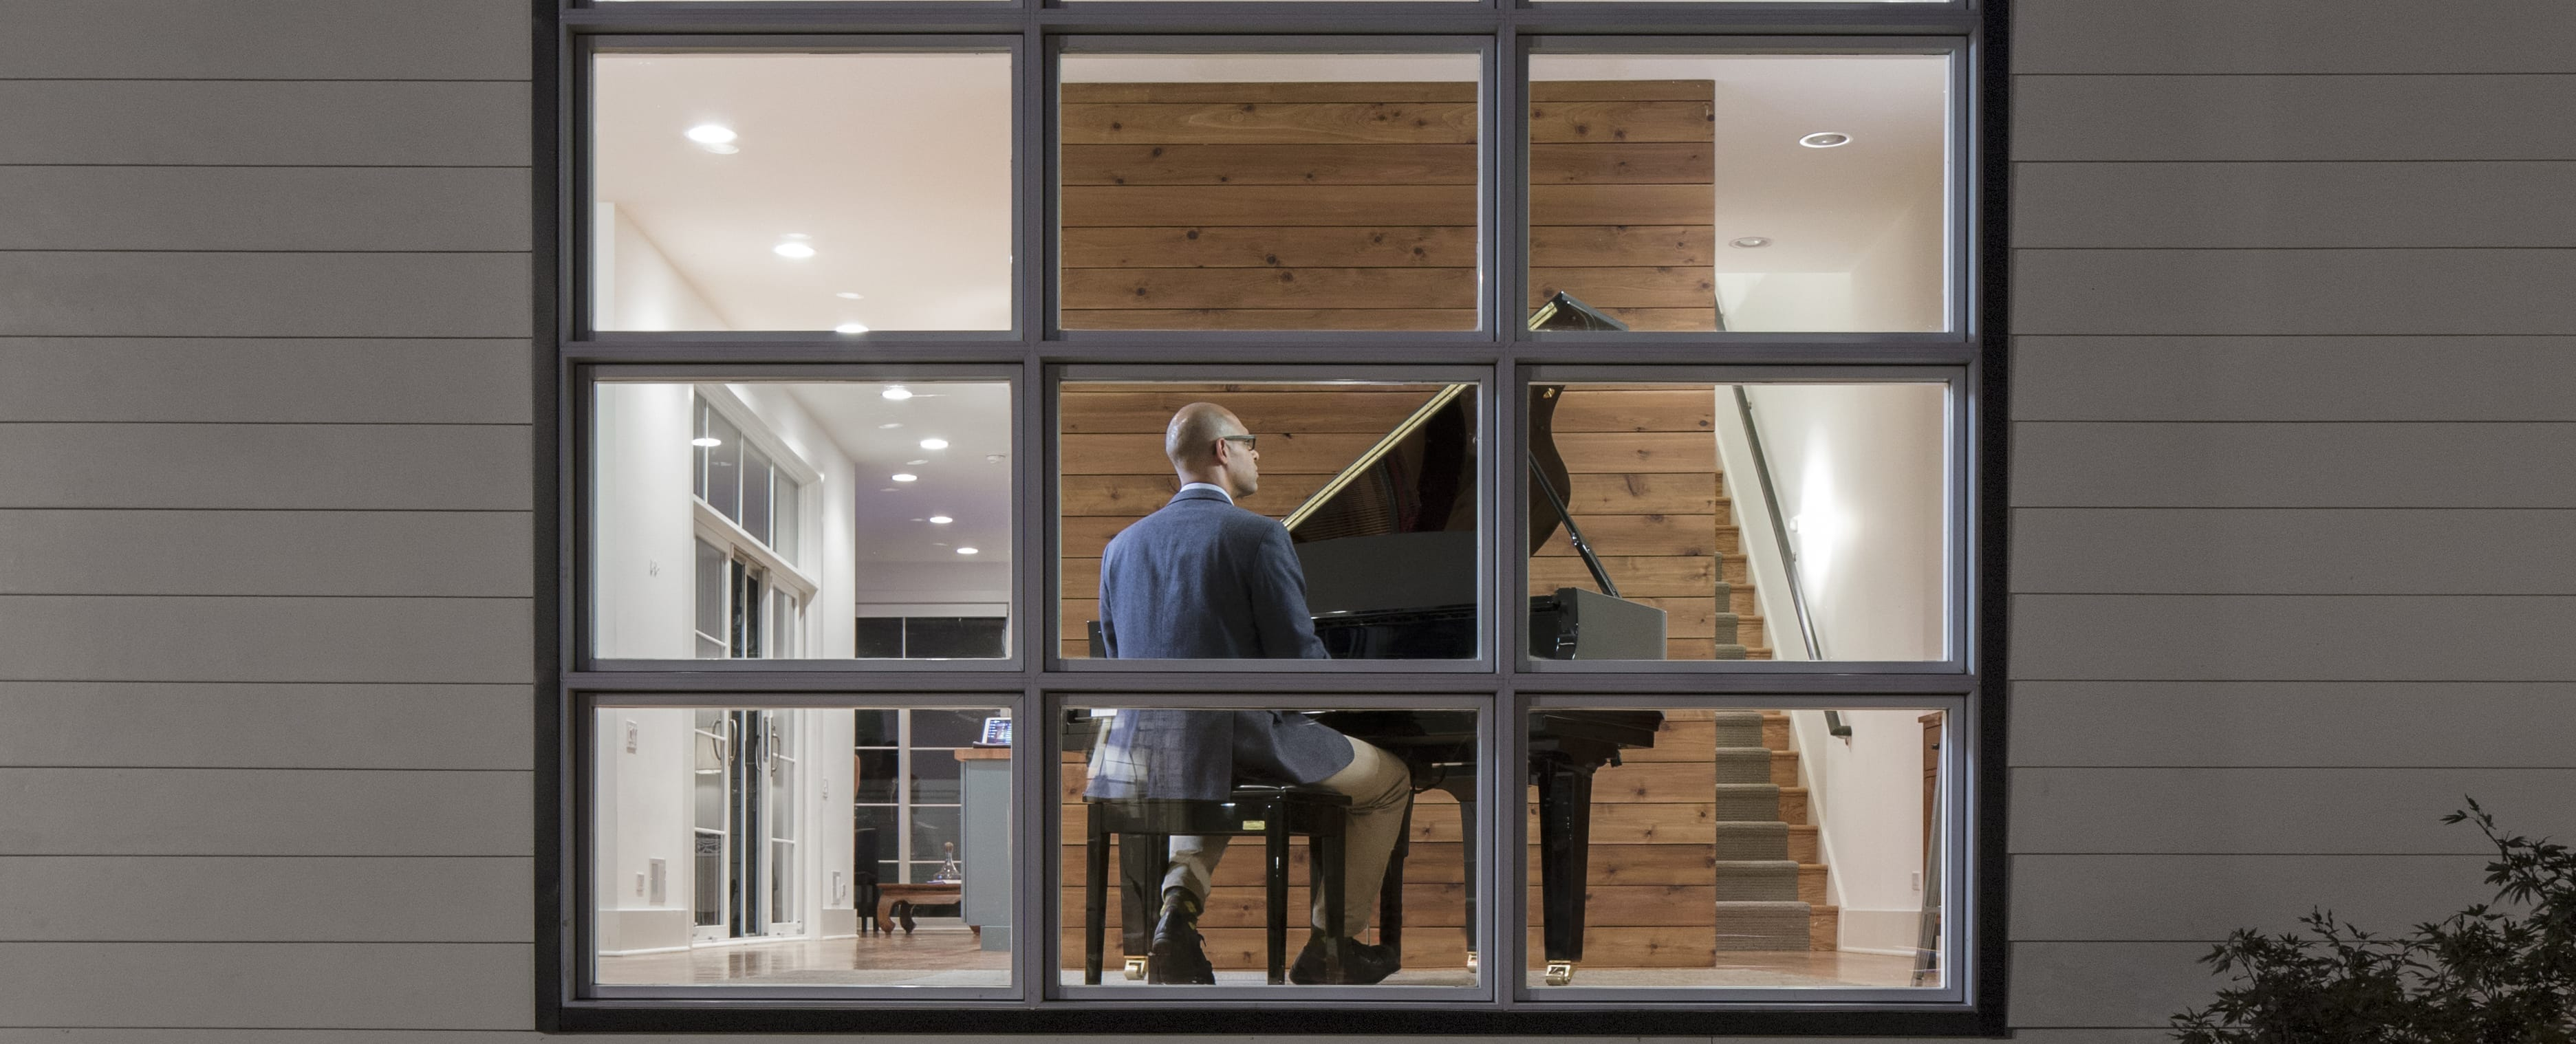 African American man in a sports jacket and slacks with his back to camera playing a baby grand piano in a modern house being viewed from outside through a 9-pane bay window.